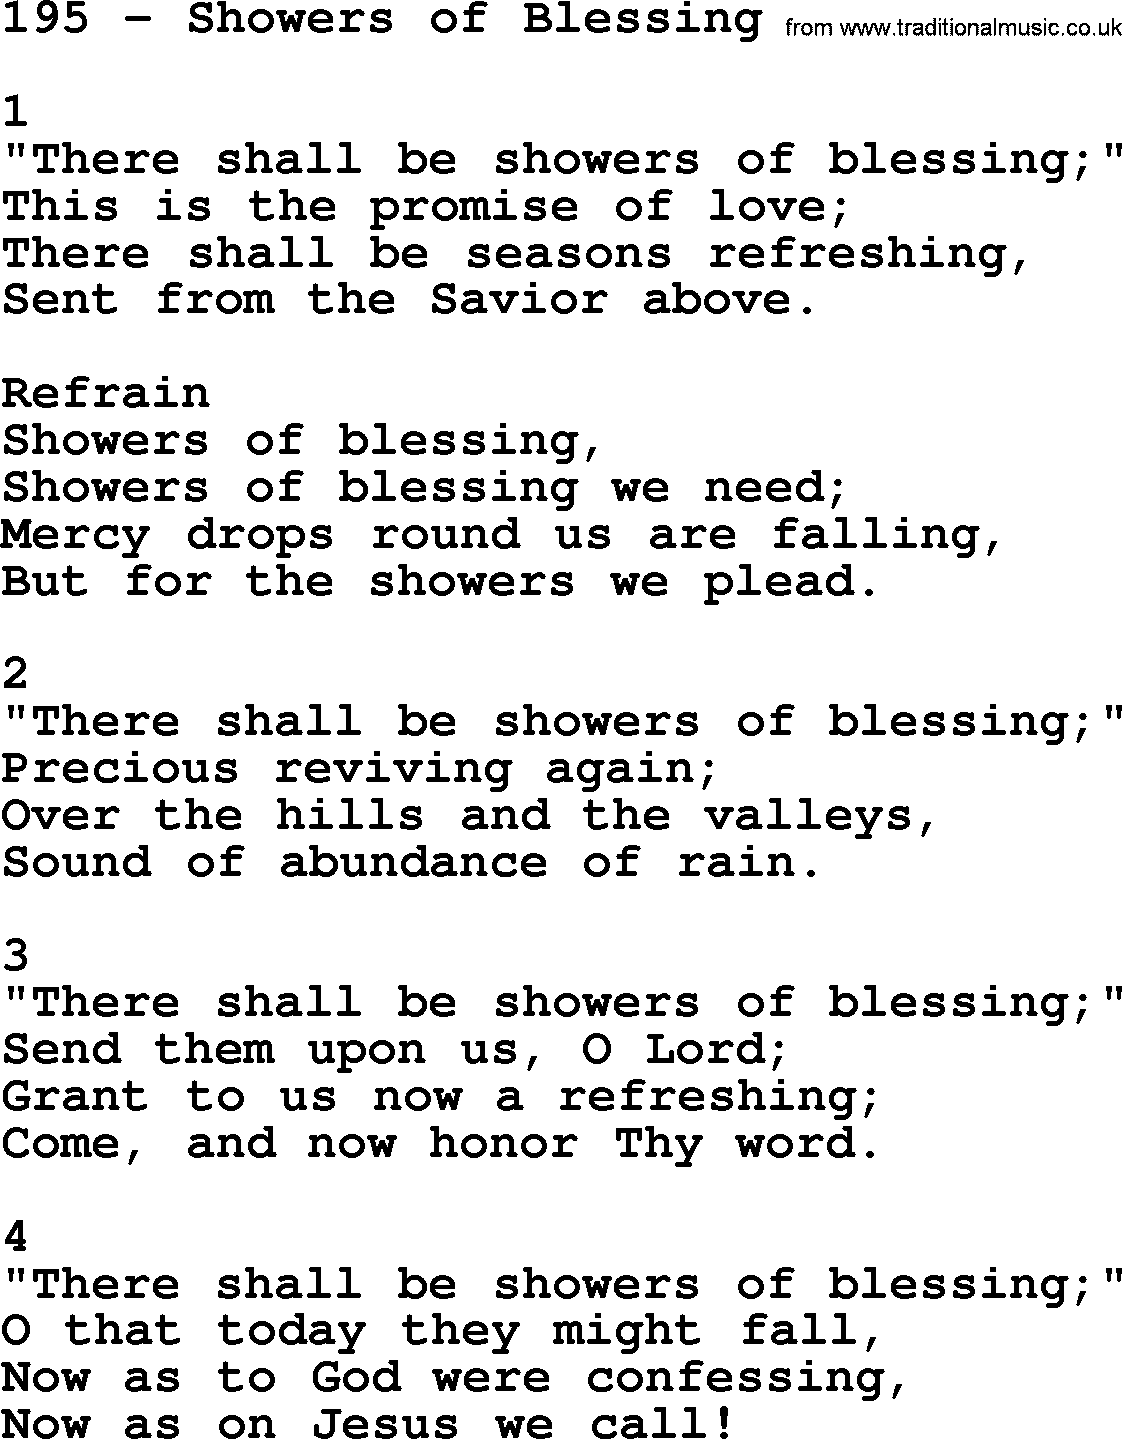 there shall be showers of blessing song free download